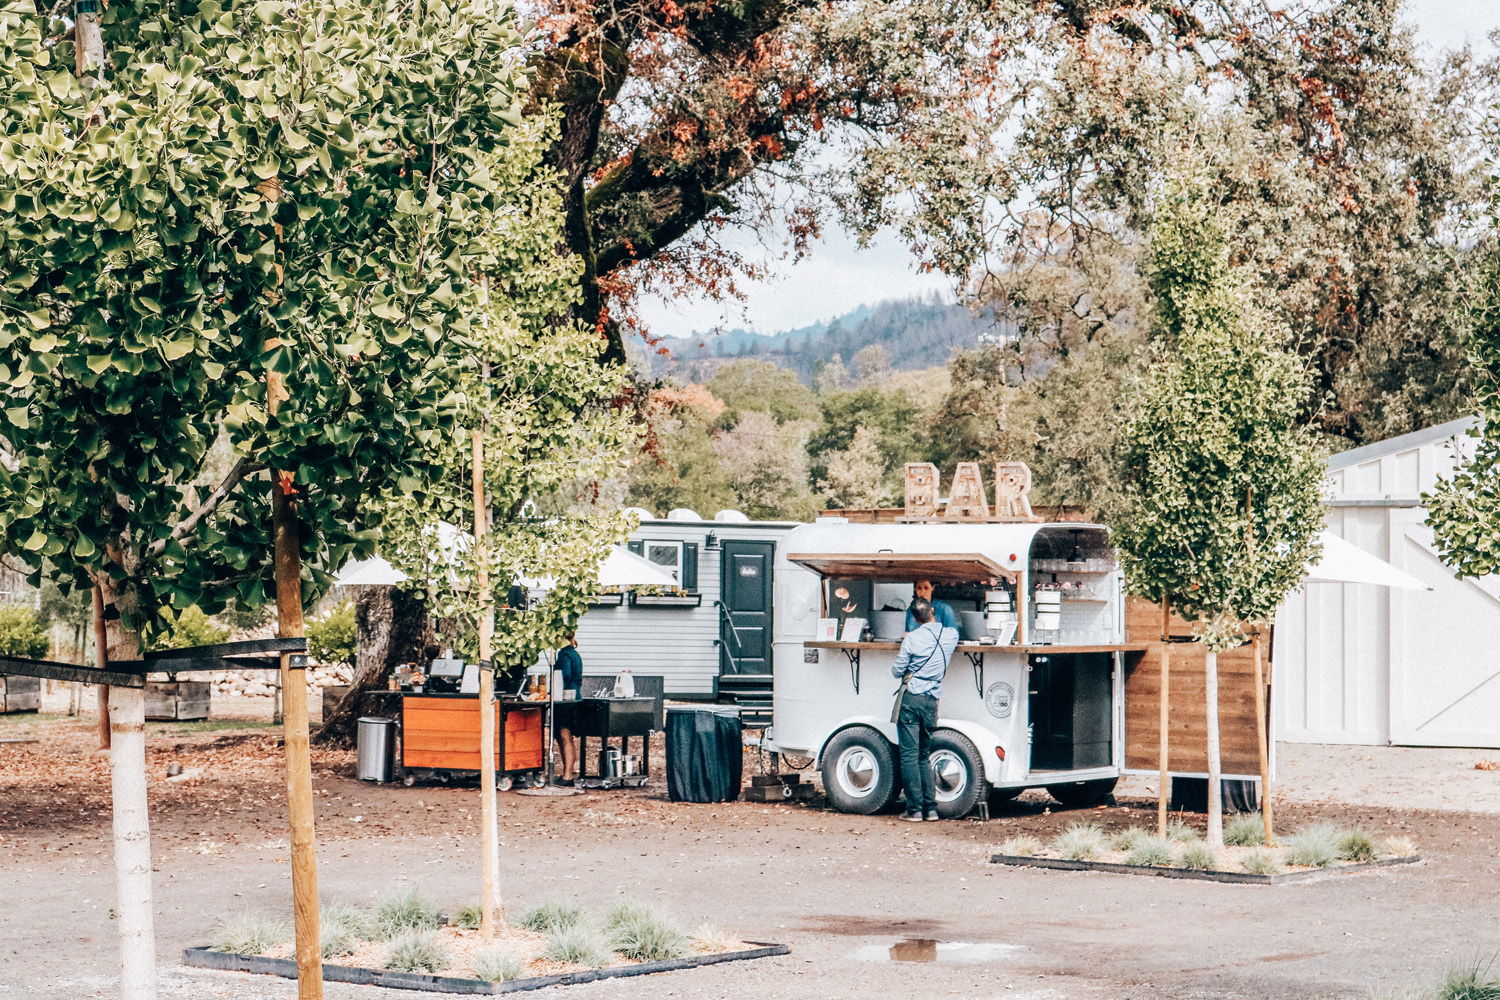 """Coffee & tea cart on the left, adorable portable restrooms in the middle/back, and """"bar"""" cart on the right with water and tea until happy hour. Photo via Kessler Ramirez"""